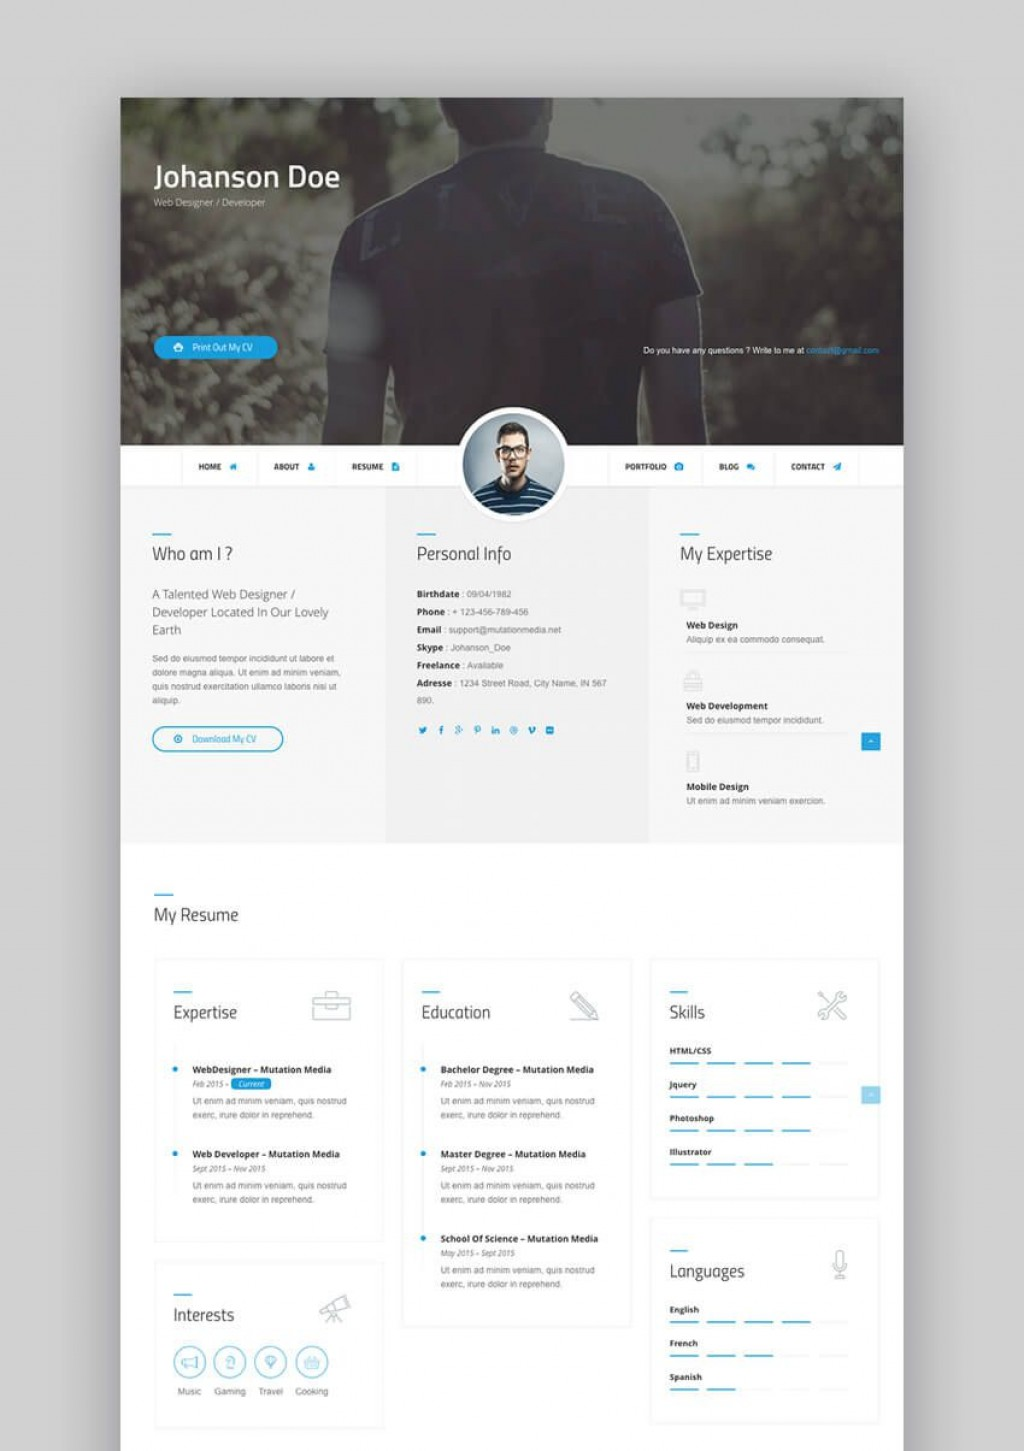 003 Beautiful Free Html Resume Template Idea  Html5 Best Cv Desmond / DownloadLarge